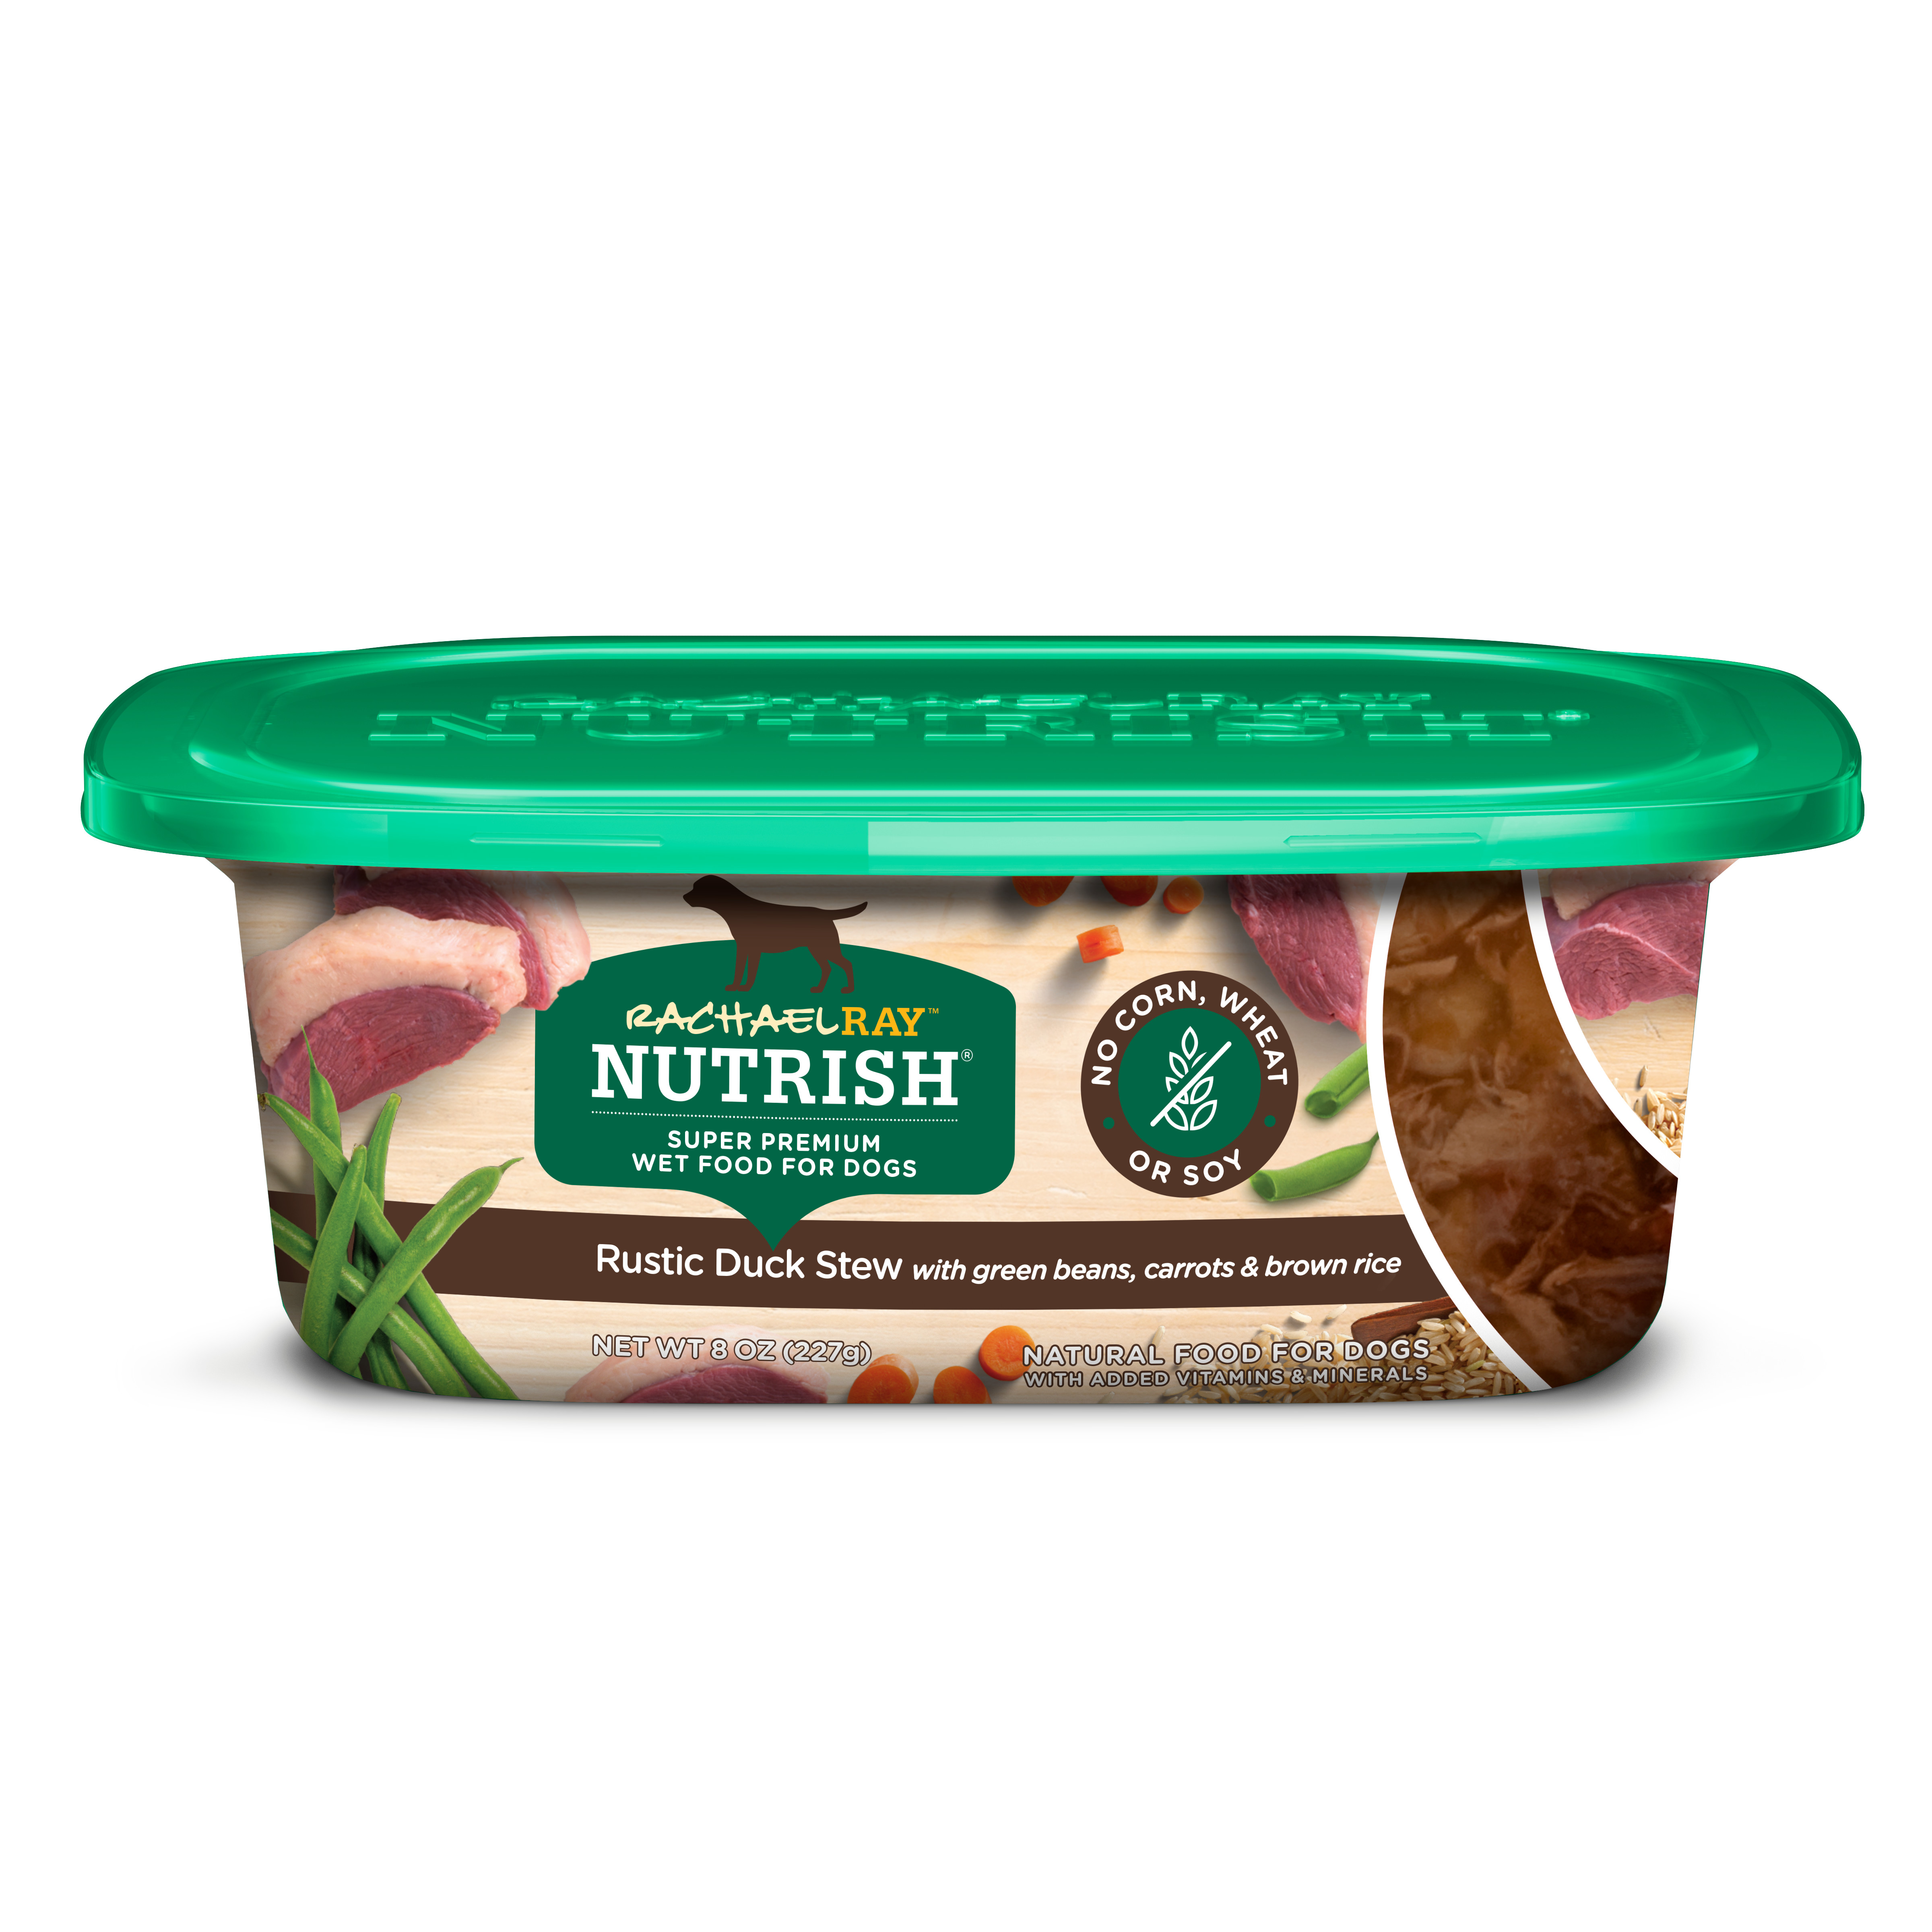 Rachael Ray Nutrish Natural Wet Dog Food, Rustic Duck Stew with Green Beans, Carrots & Brown Rice 8 oz tub